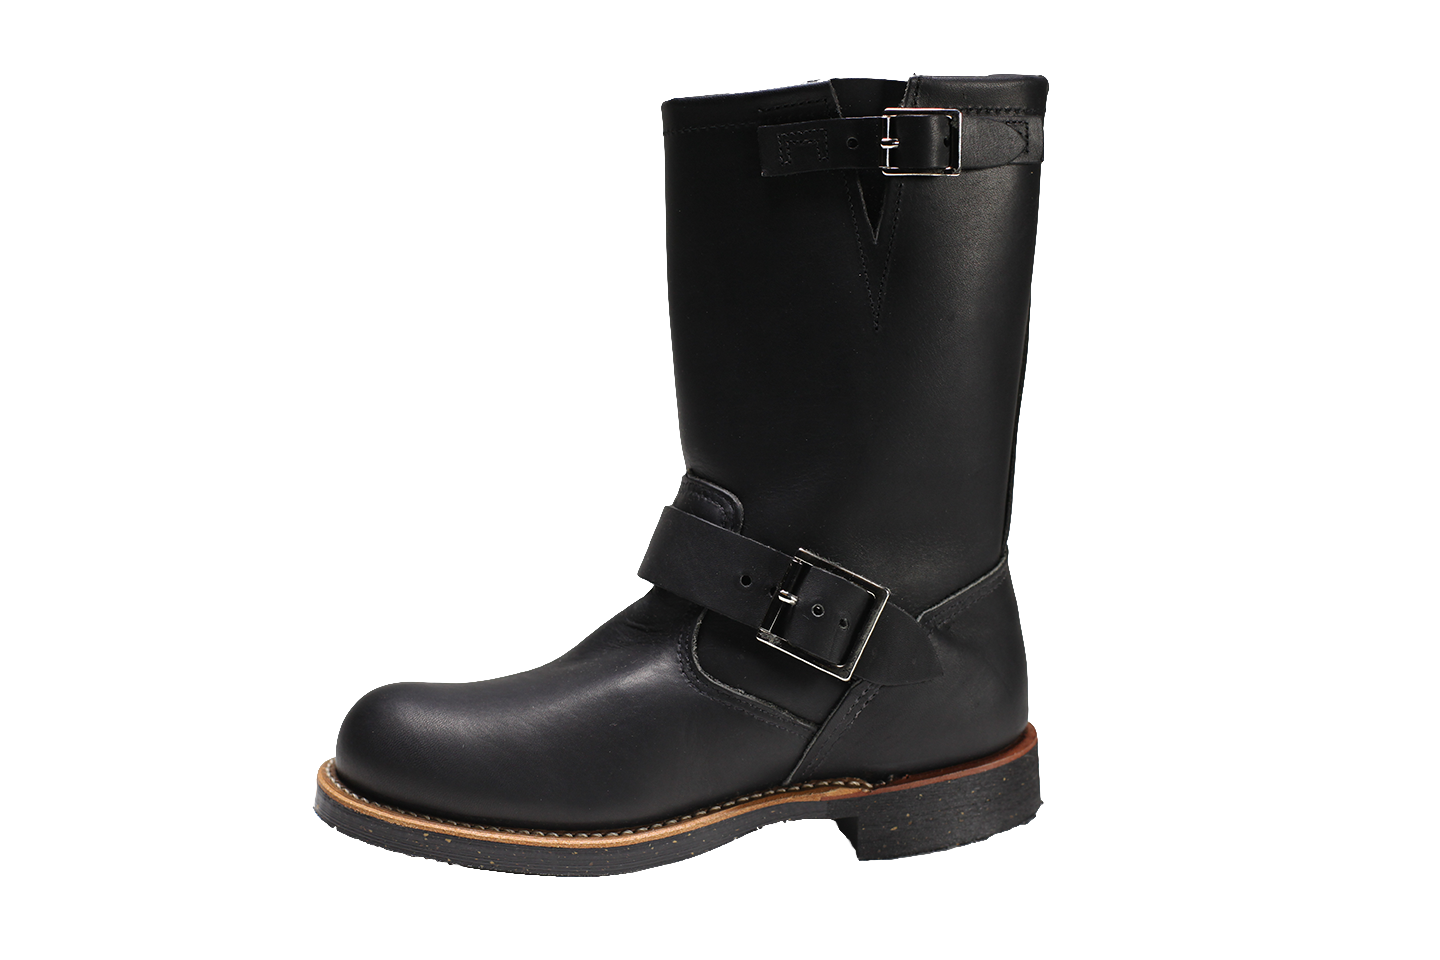 Red Wing Boots Women cS1jtr6L